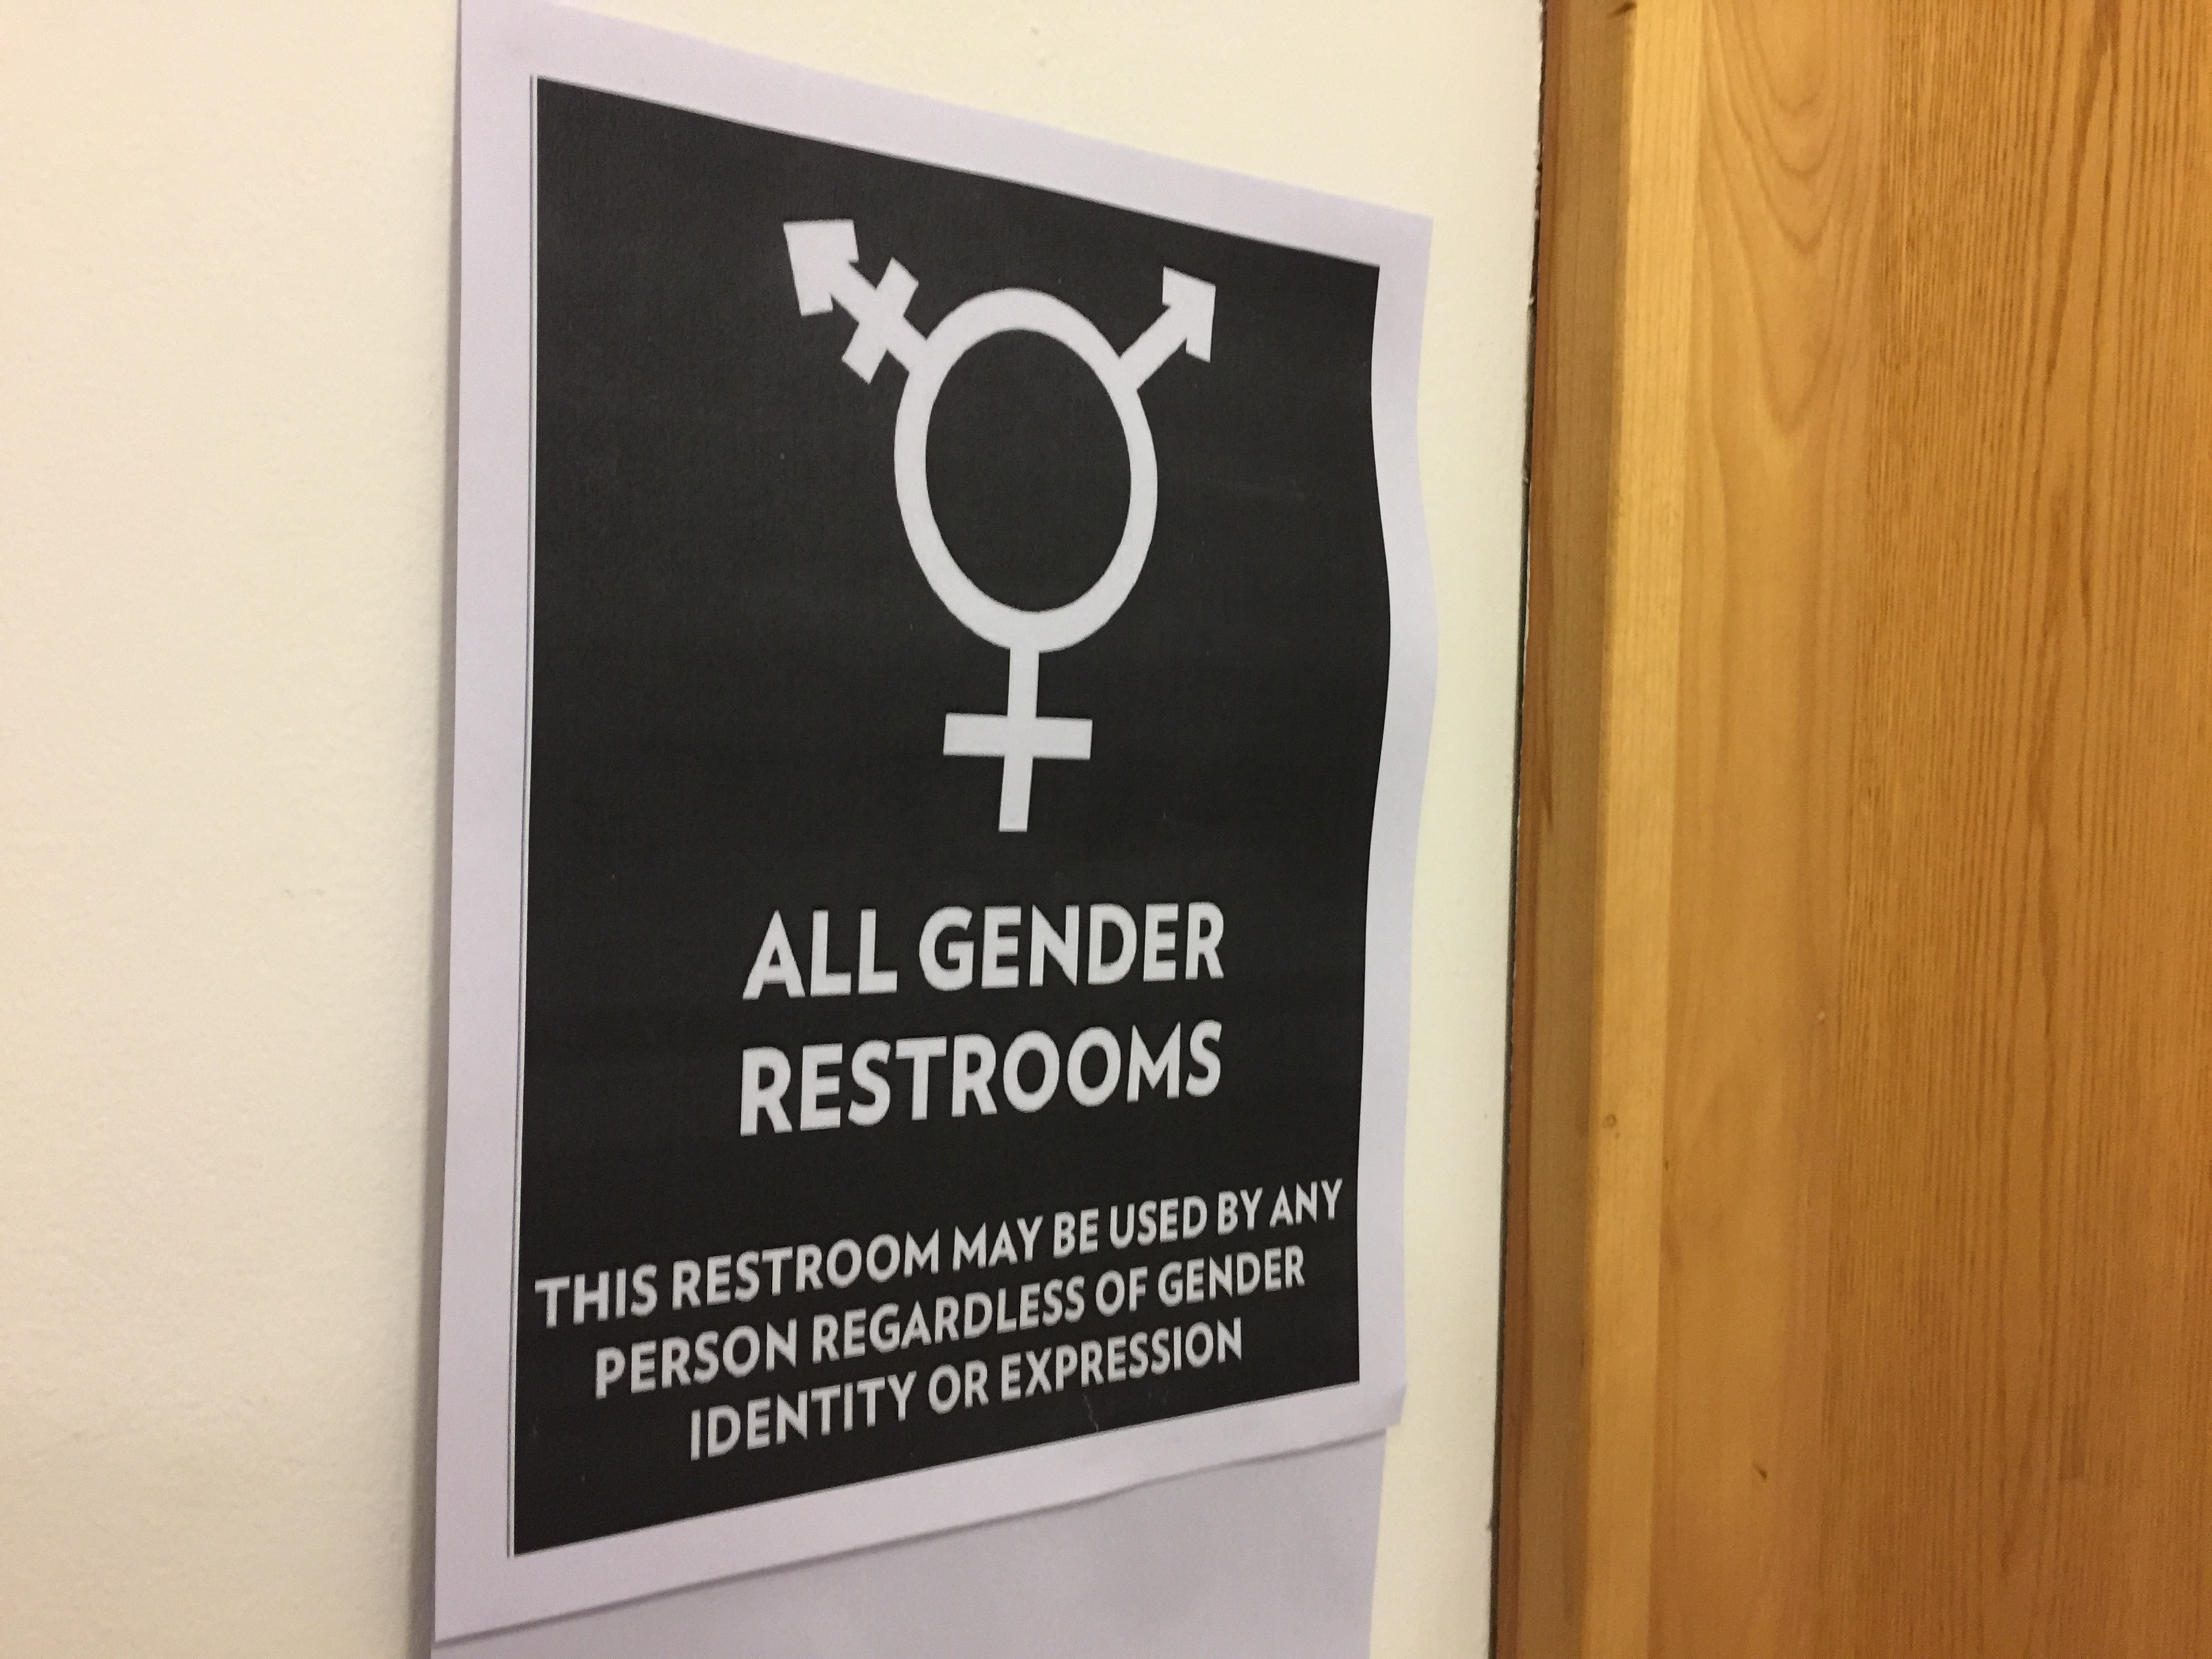 Gender-inclusive restroom signs have been placed over gendered signs in eight buildings on Baker's campus.